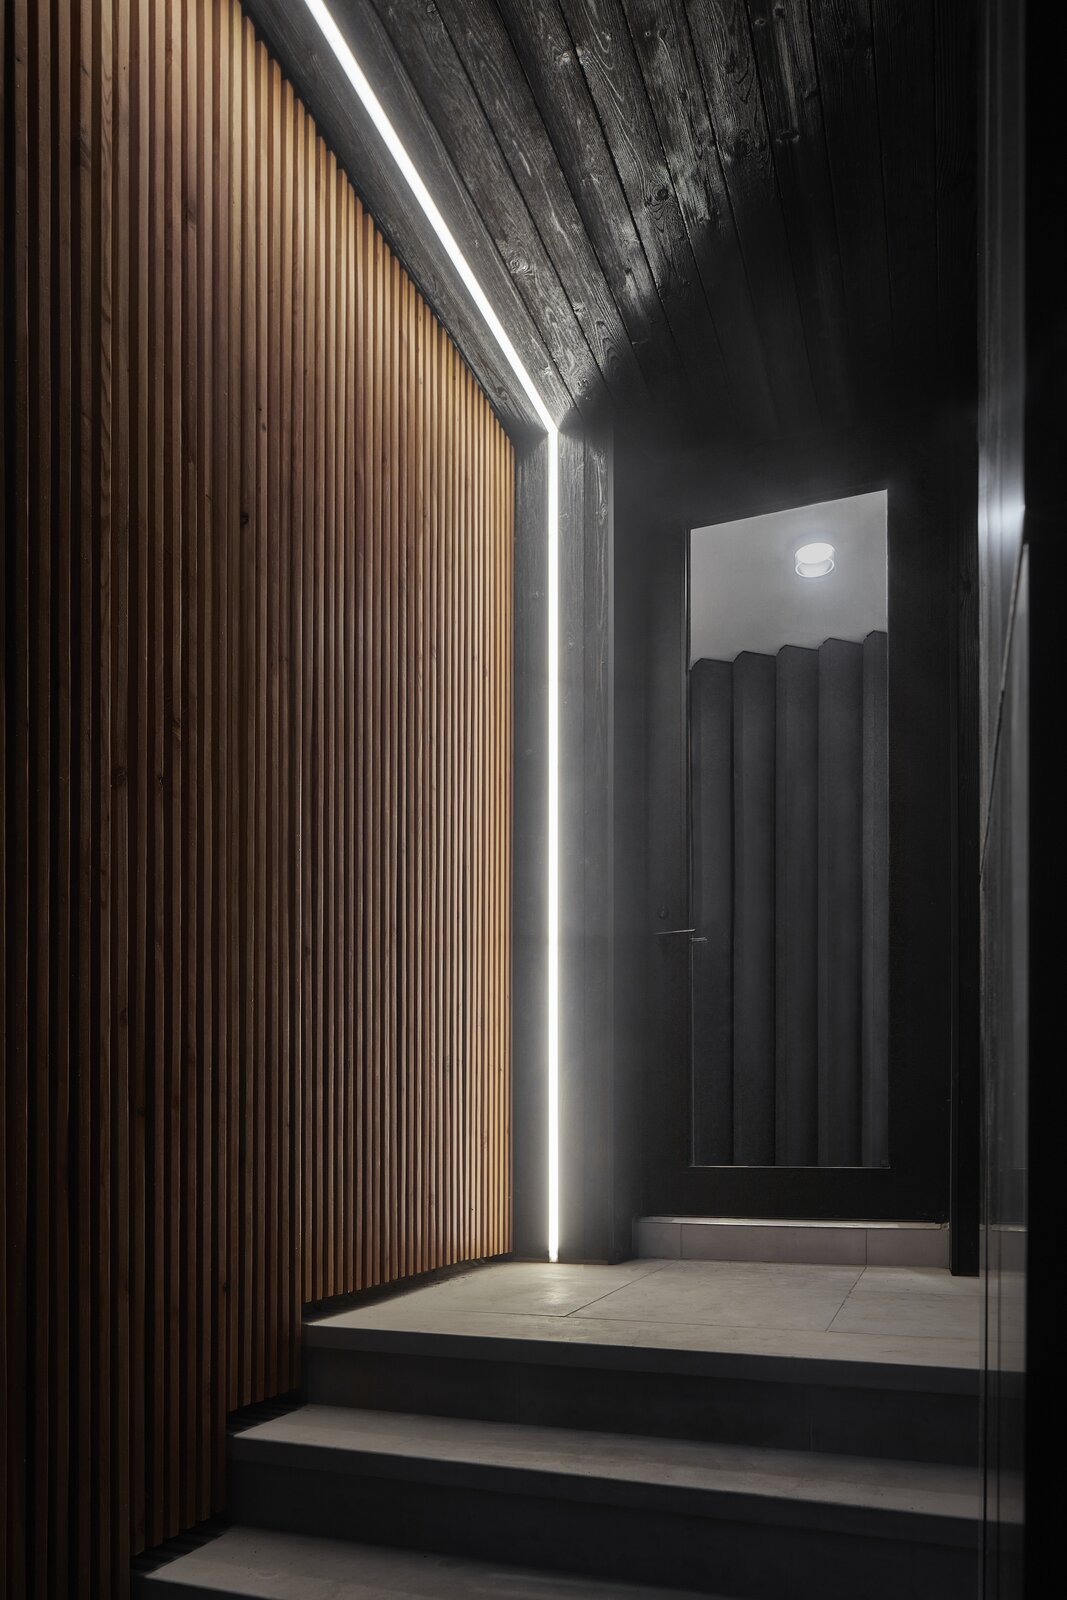 Entrance of Walker Residence by Reflect Architecture.